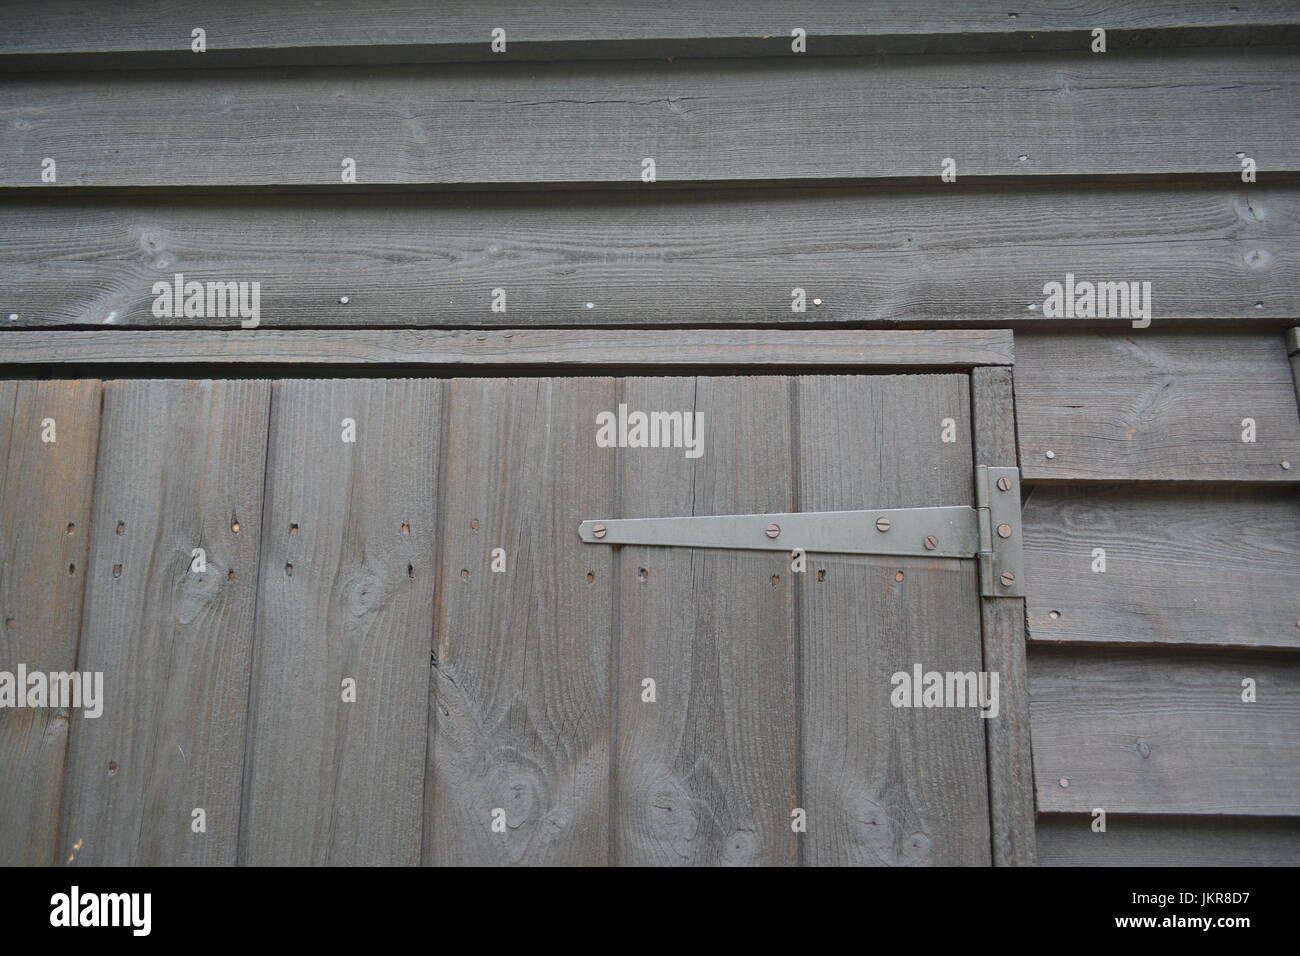 Close up of timber shed showing detailing of overlapping wood door and hinge re wood treatment creocote maintenance - Stock Image